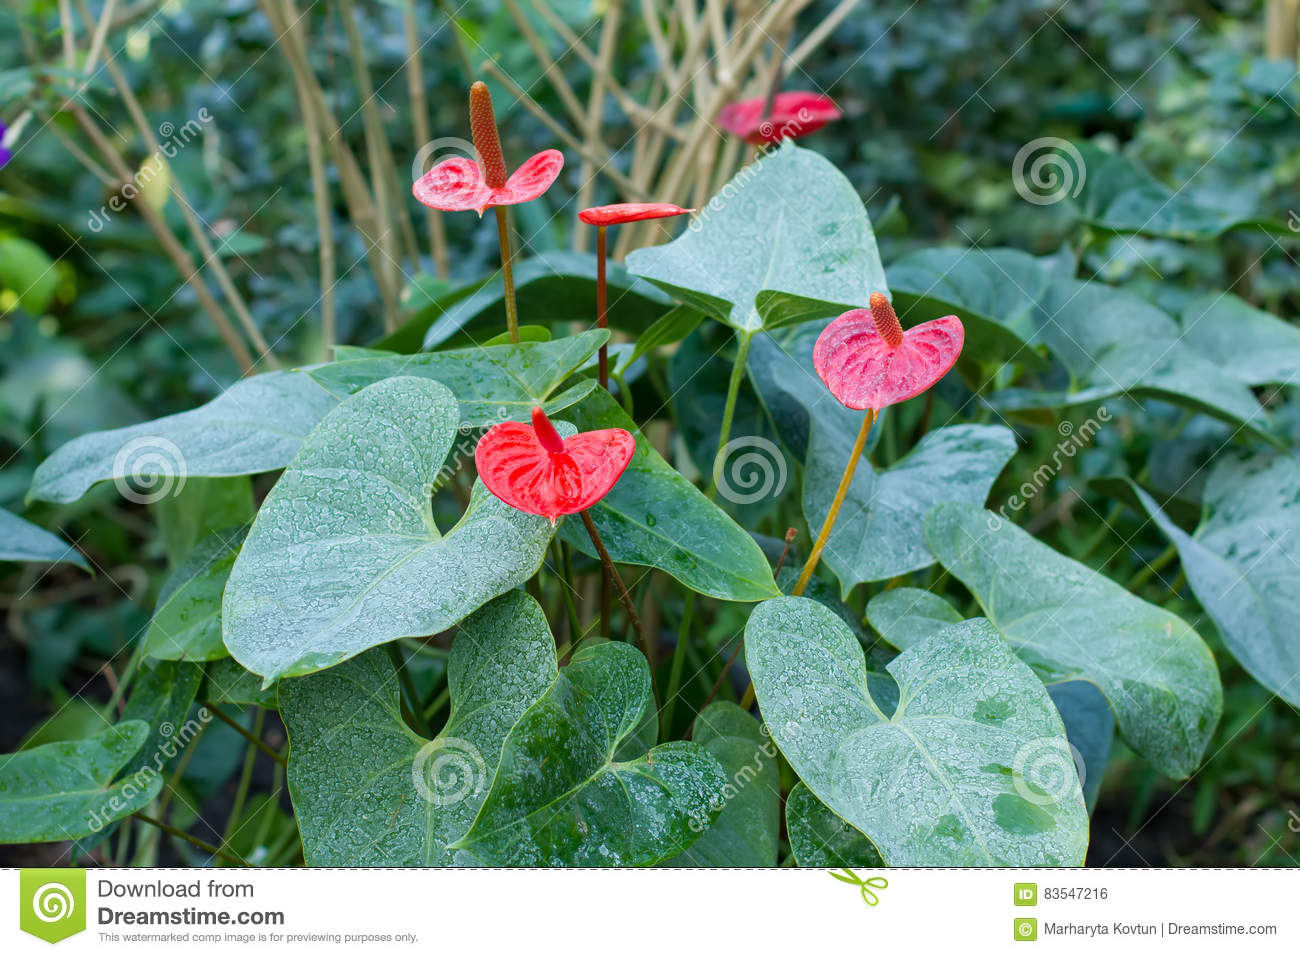 Flowering bush of anthurium in a tropical forest stock photo download flowering bush of anthurium in a tropical forest stock photo image of exclusive izmirmasajfo